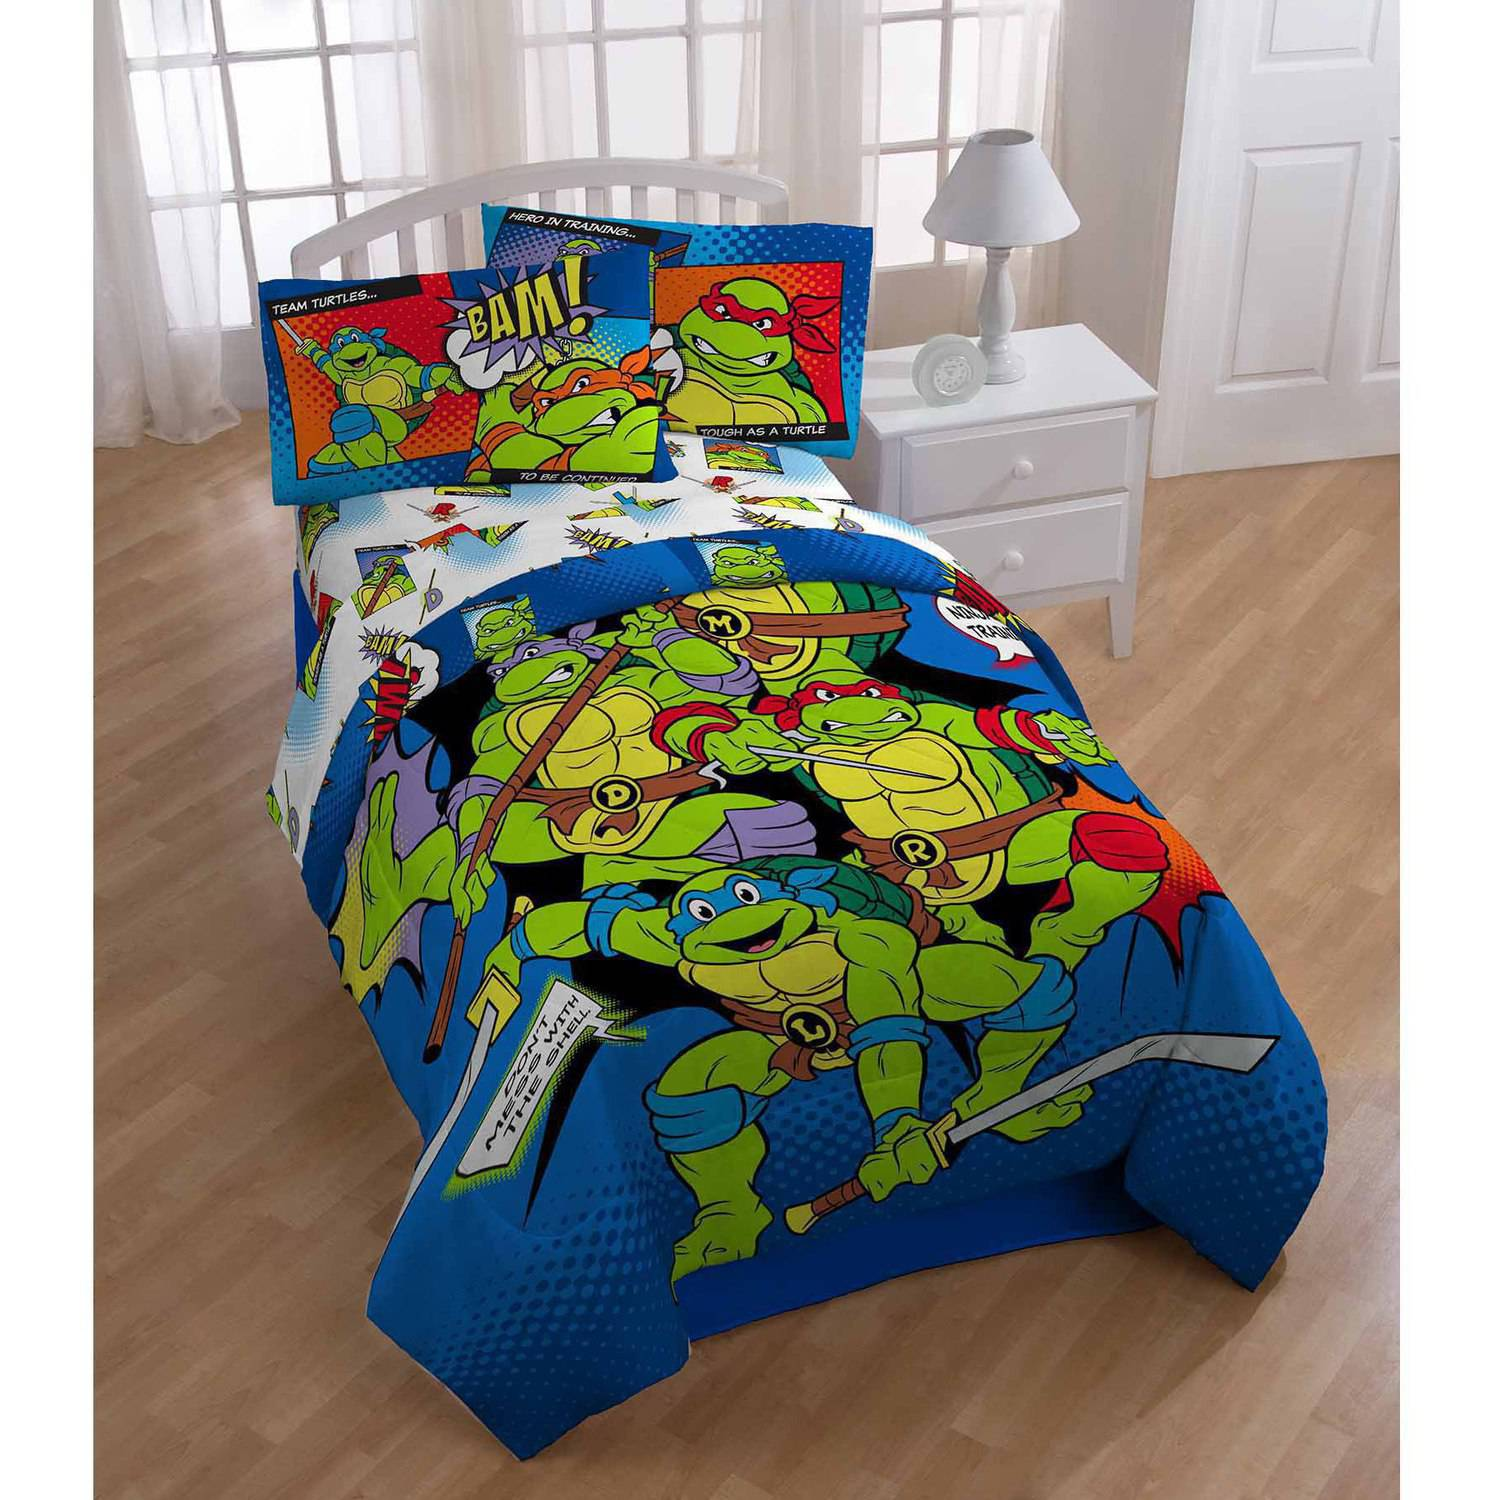 Teenage Mutant Ninja Turtle Bedding Collection - Walmart.com